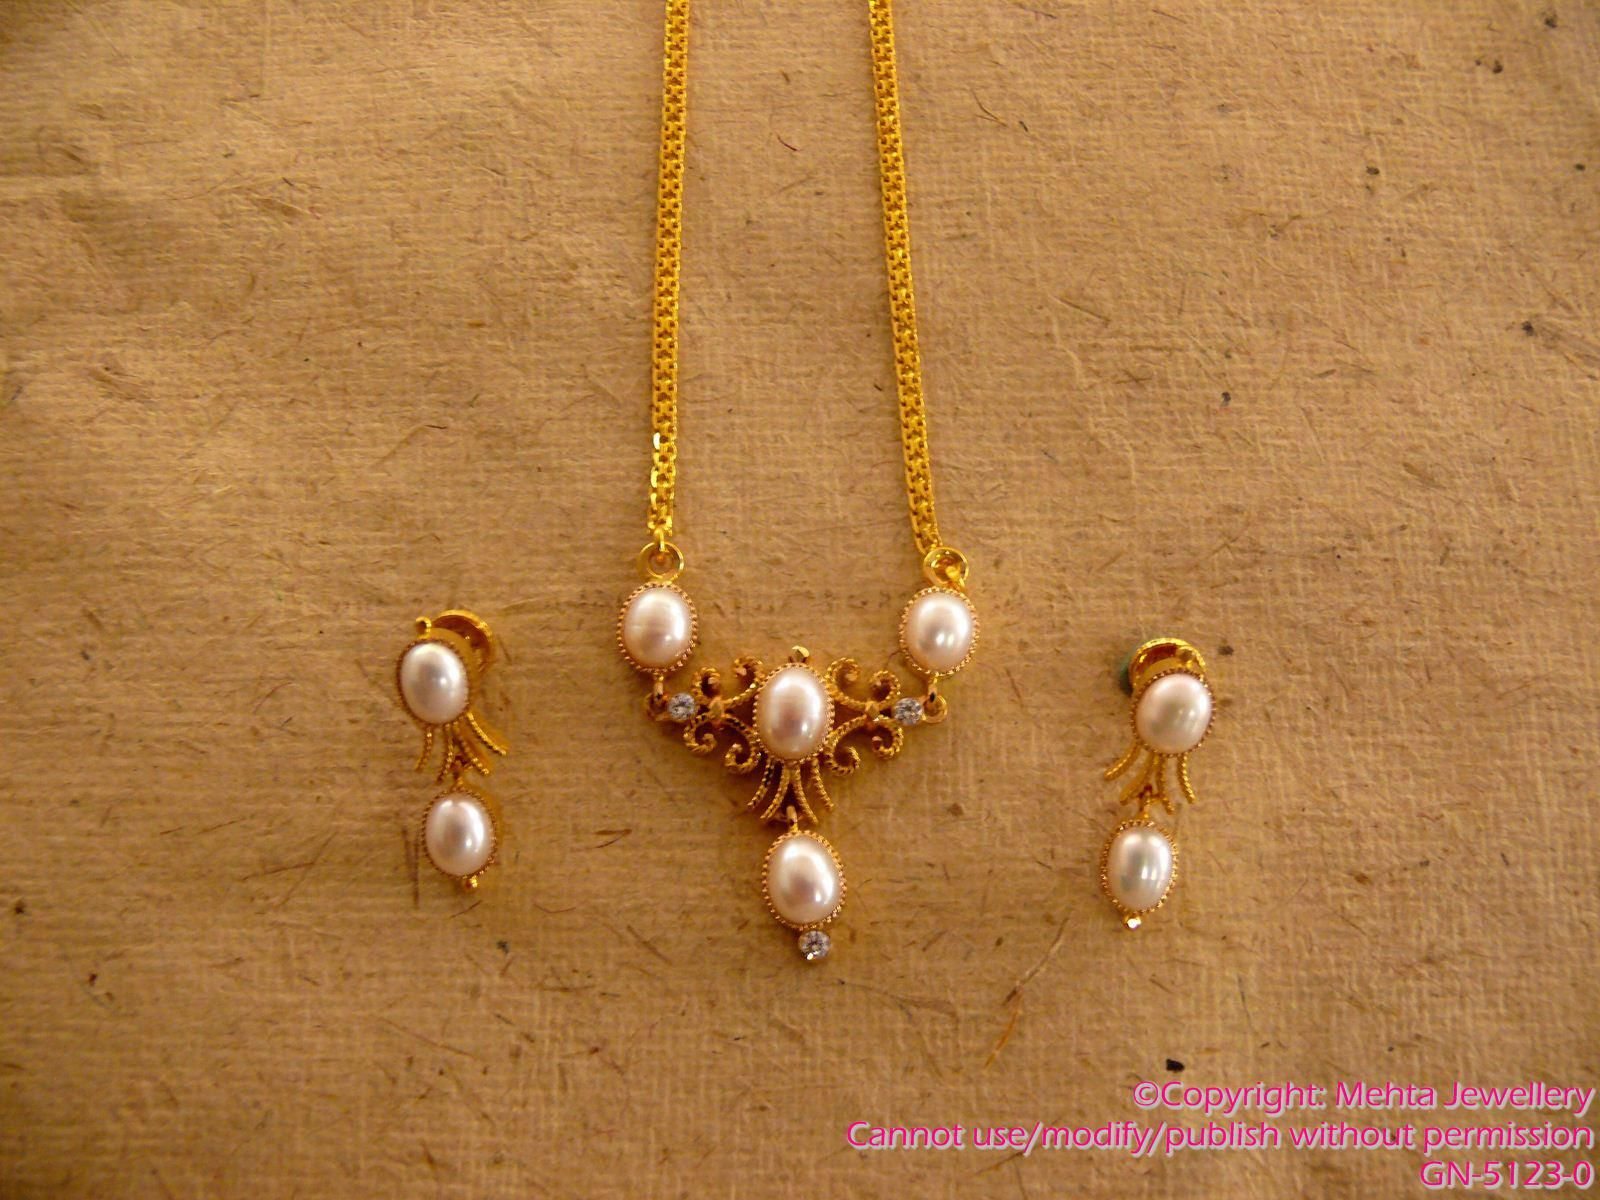 Hi, The price for the Necklace & Earrings is Rs. 77,000/- gold wt ...